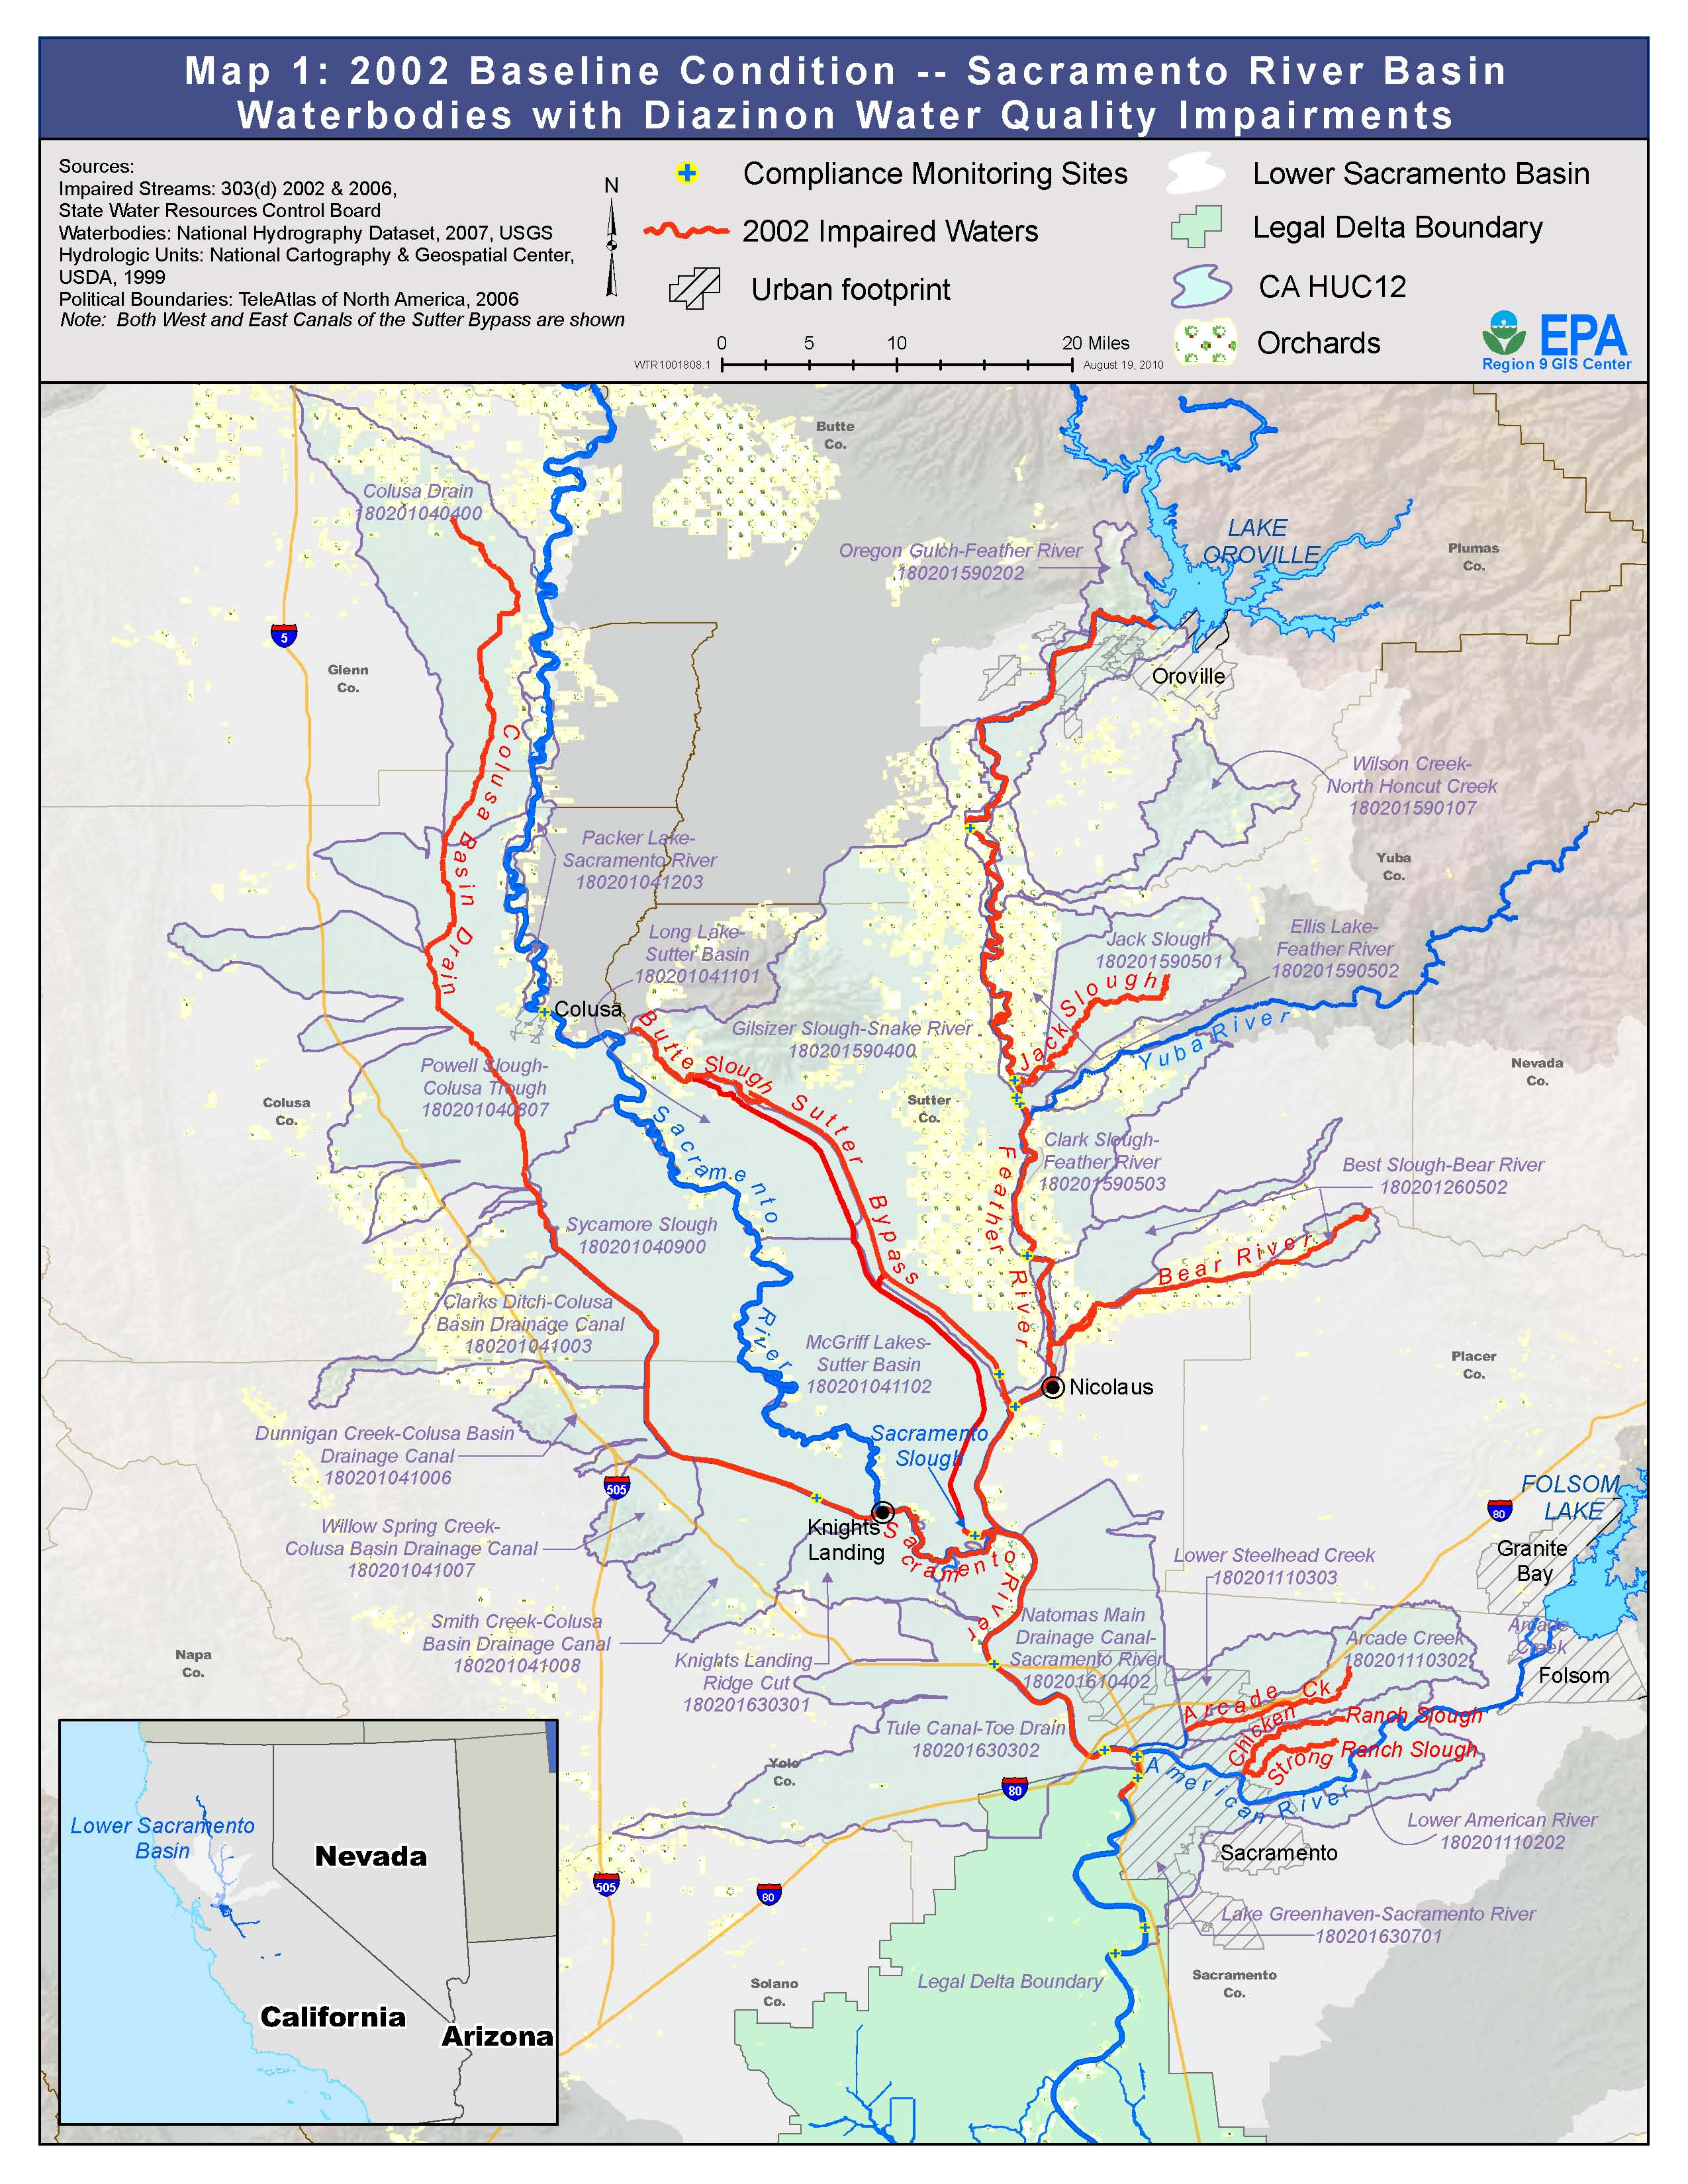 map 1 baseline condition sacramento river basin waterbodies with diazinon water quality impairments